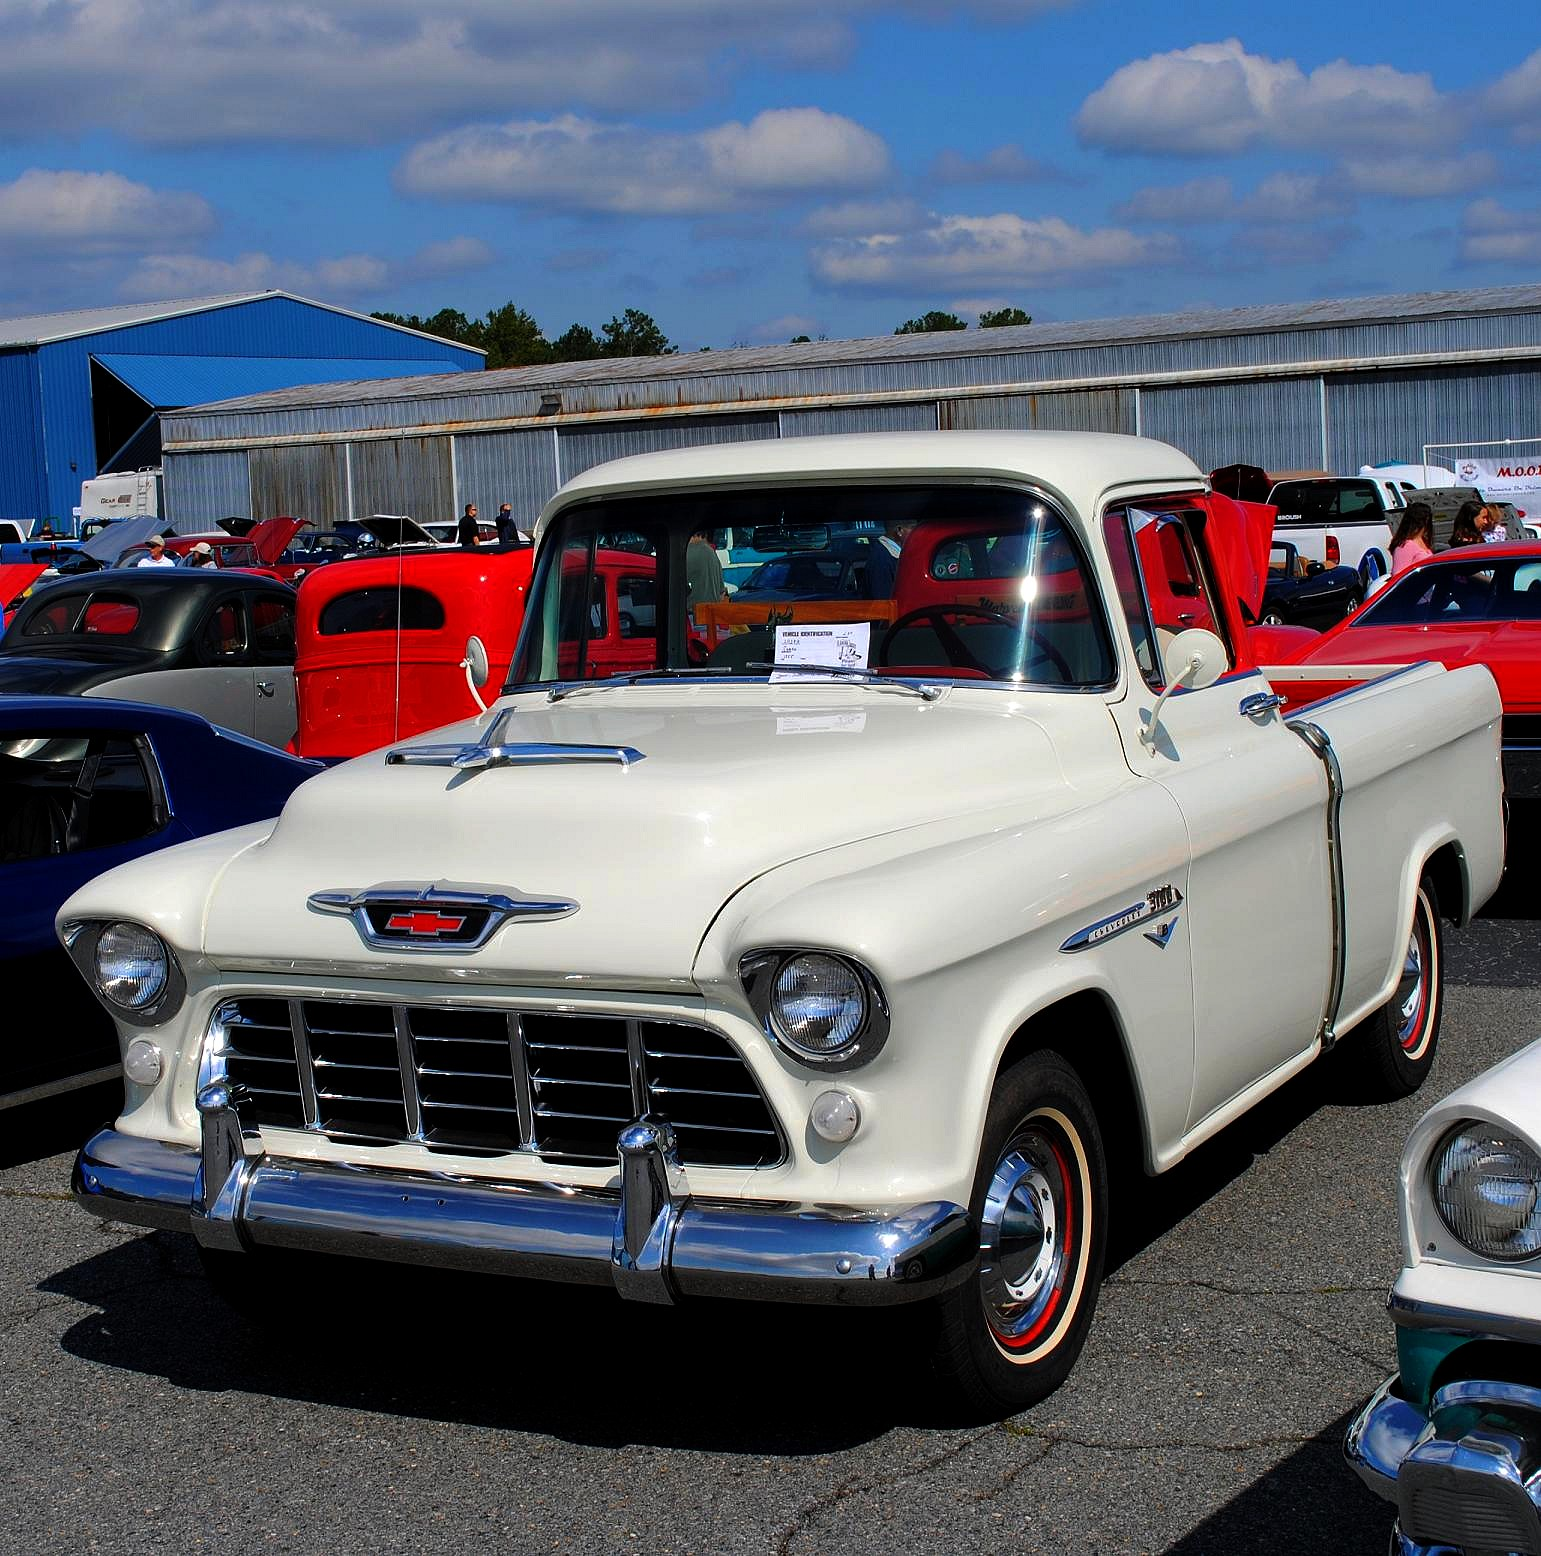 File:A classic Chevrolet pick up truck.jpg - Wikimedia Commons